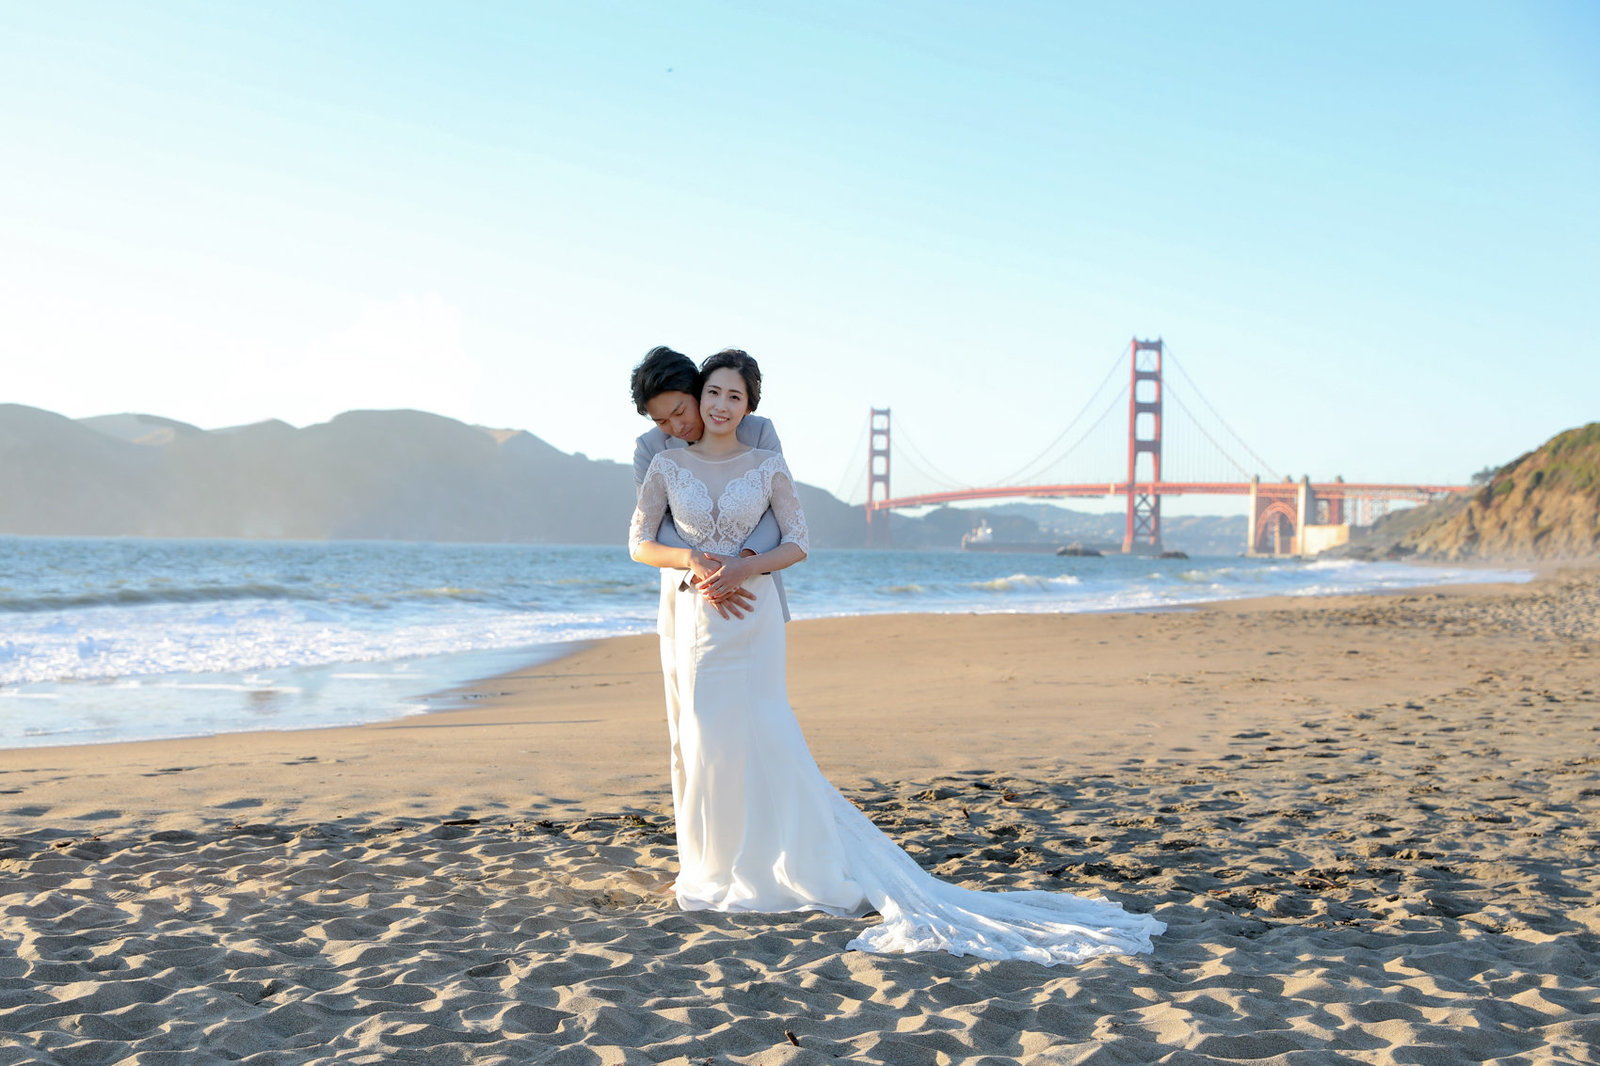 Engagement session for bride and groom at Sunset in San Francisco, California